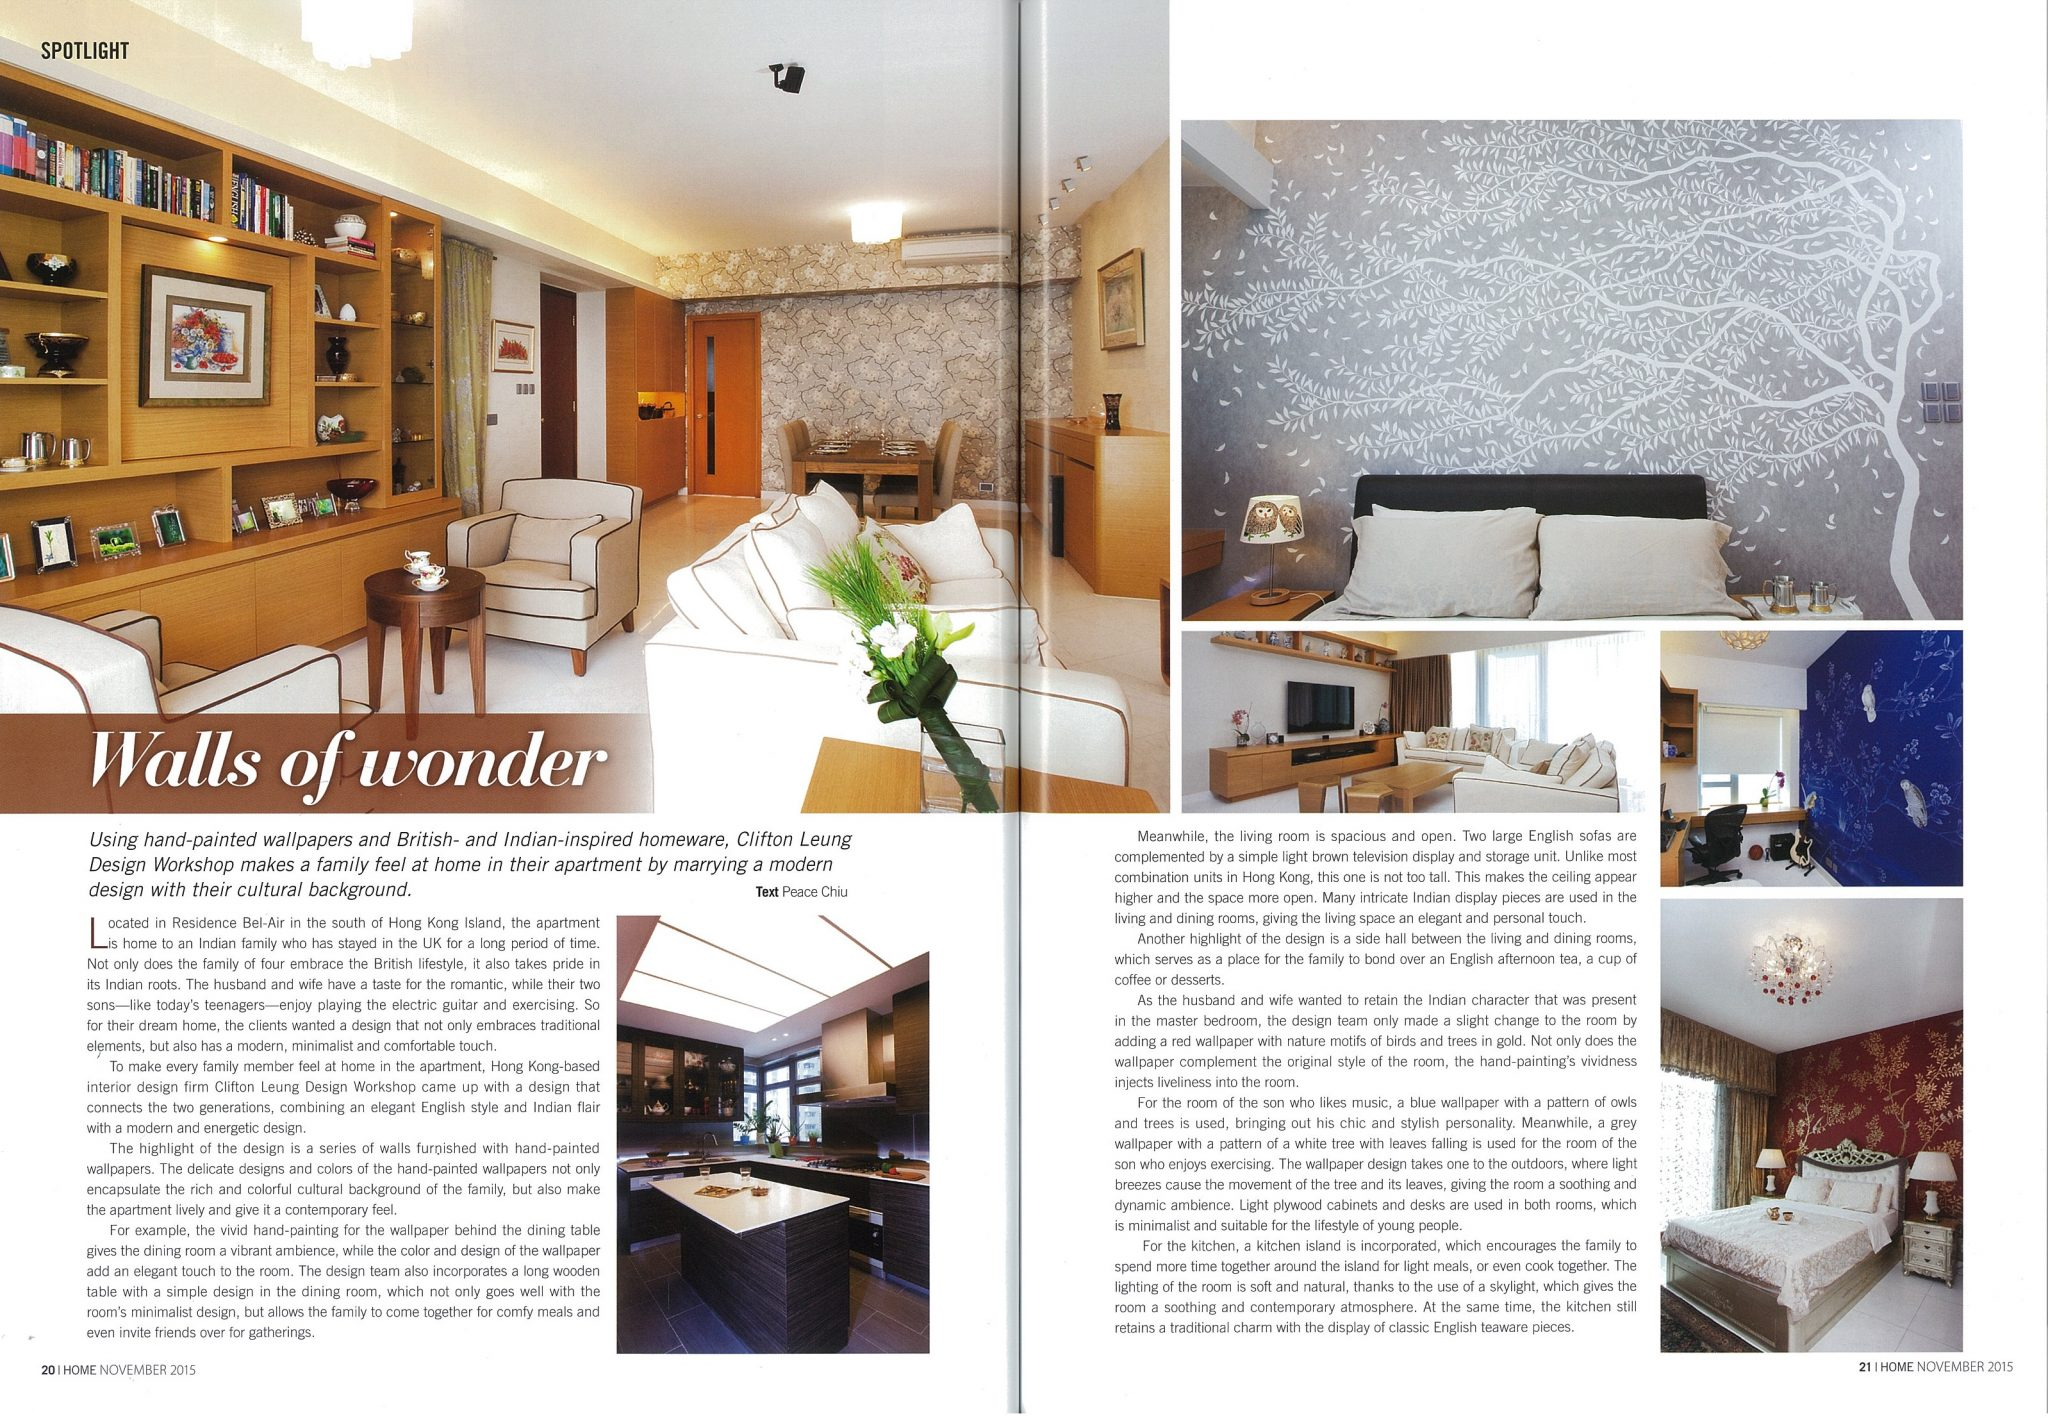 Walls of Wonder | HOME by The Standard | Nov 2015